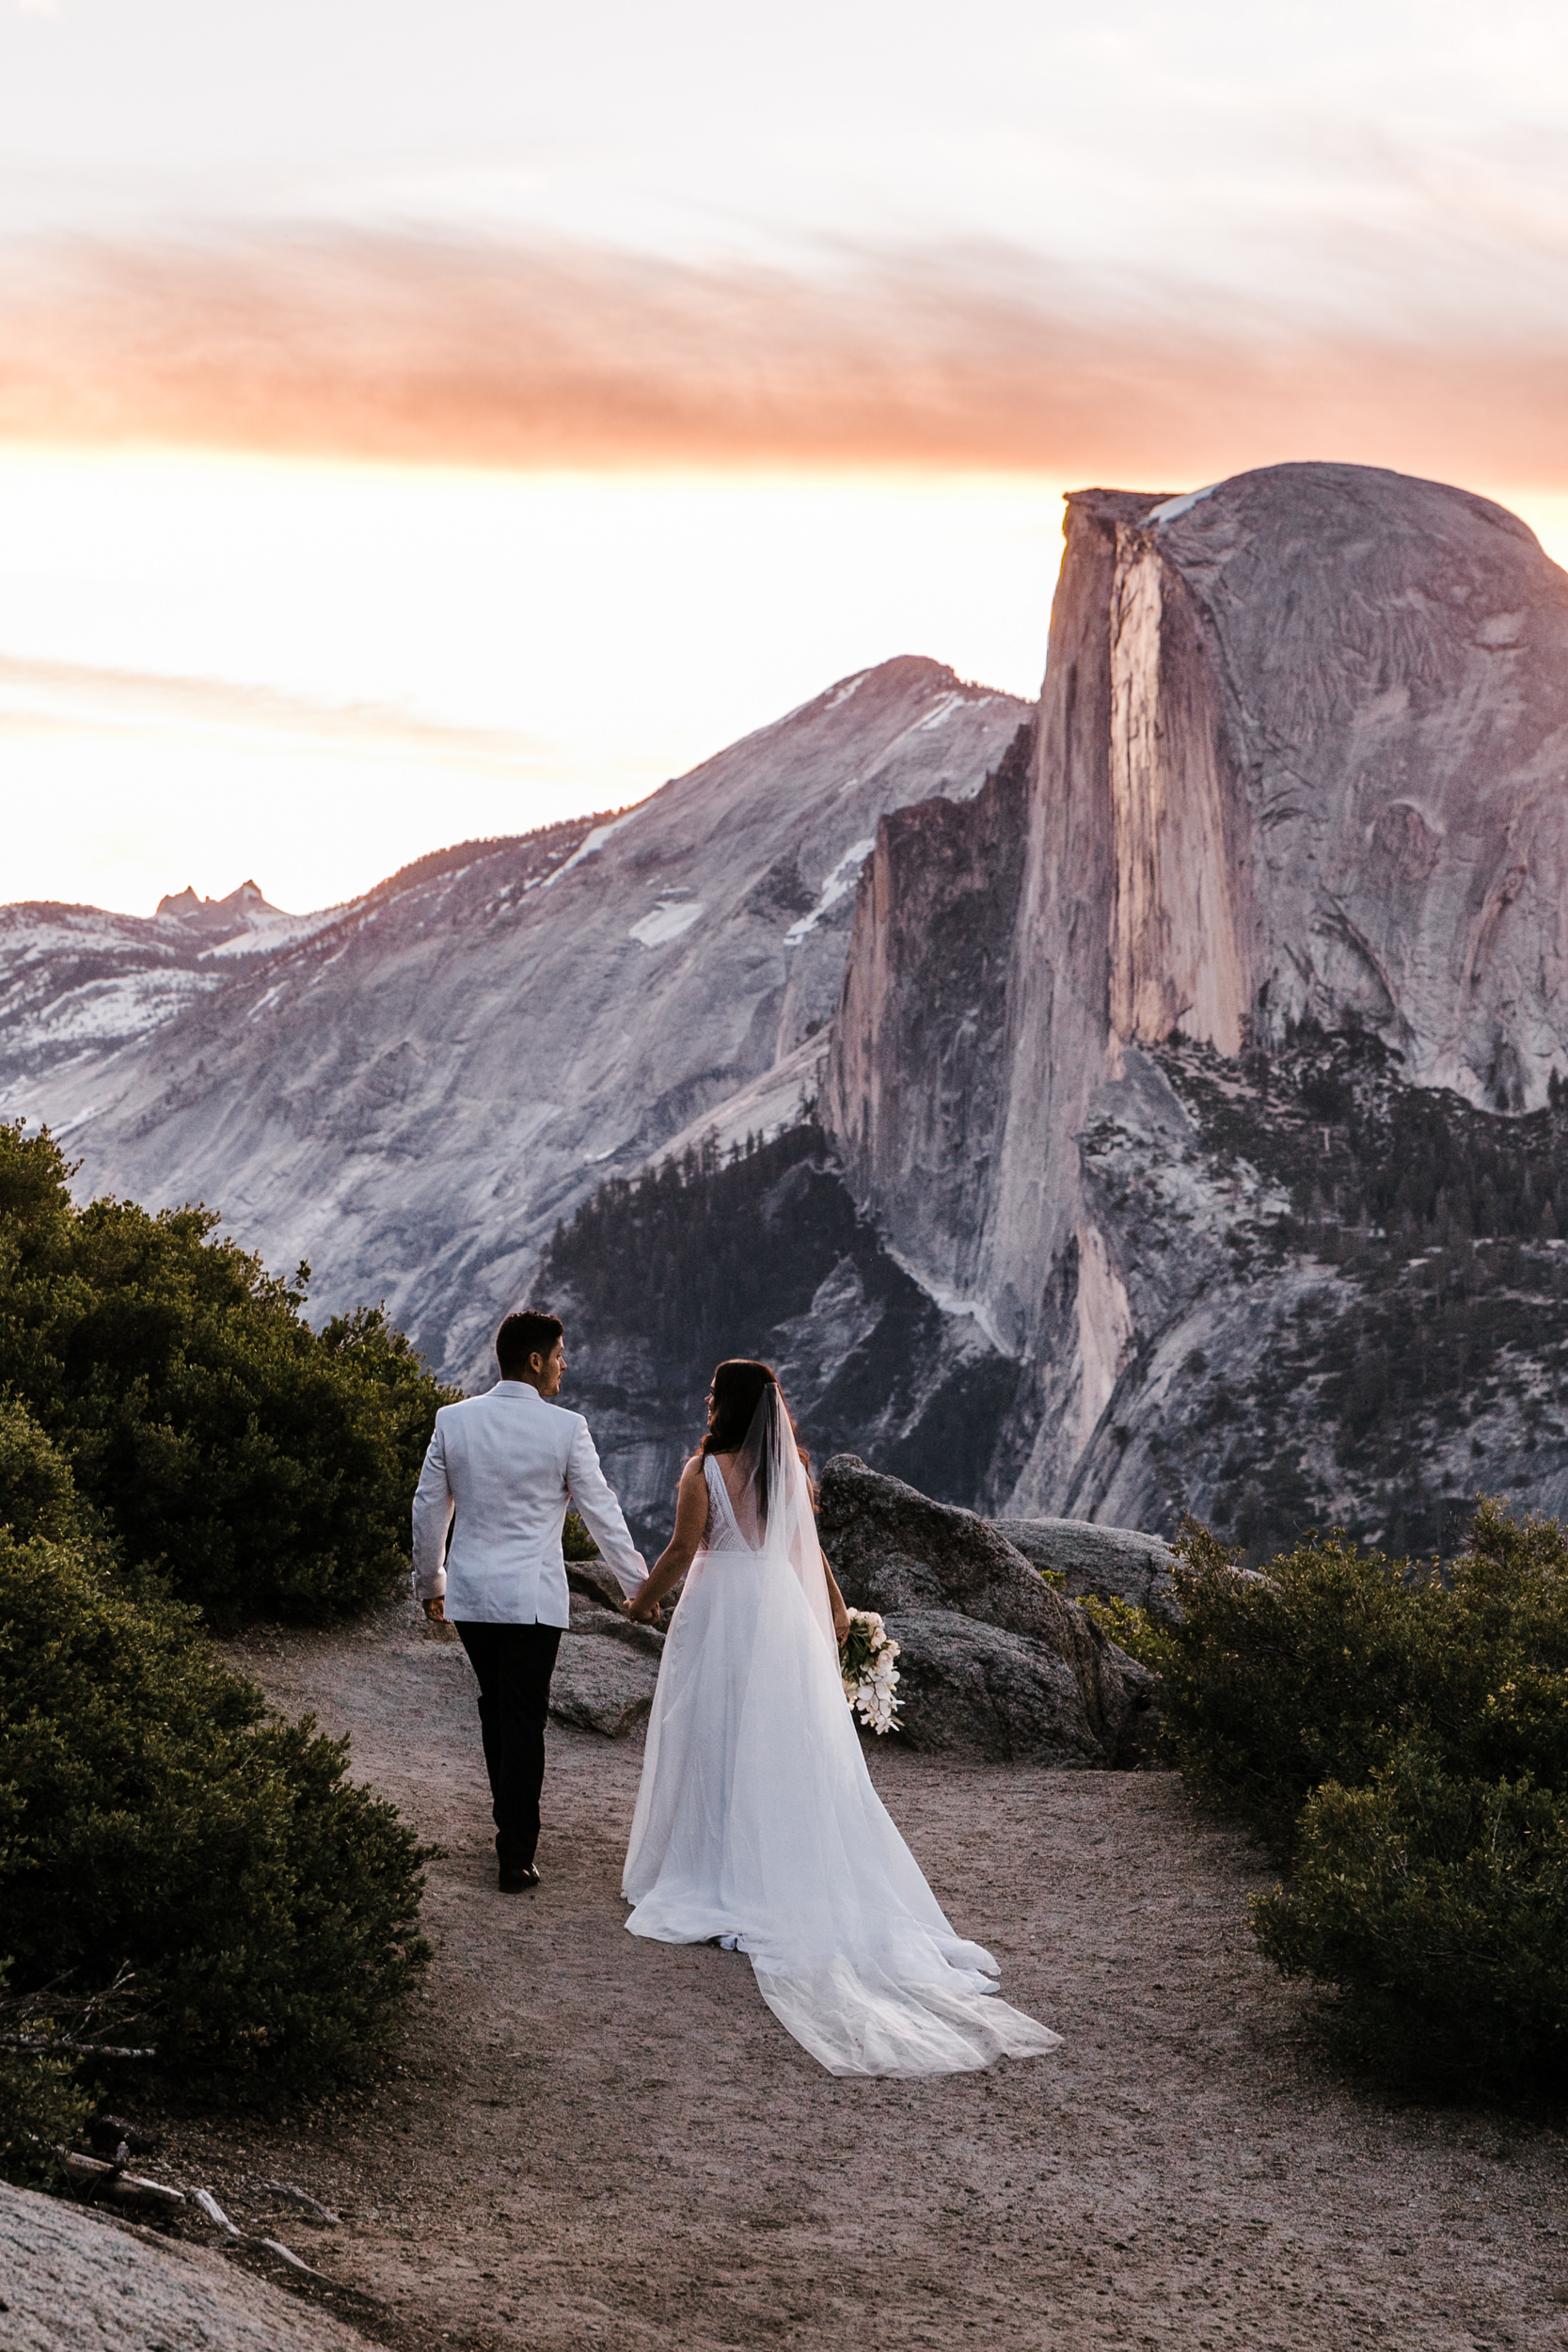 Adventurous Destination Elopement in Yosemite National Park | Glacier Point Sunrise First Look + Taft Point Ceremony | The Hearnes Adventure Photography